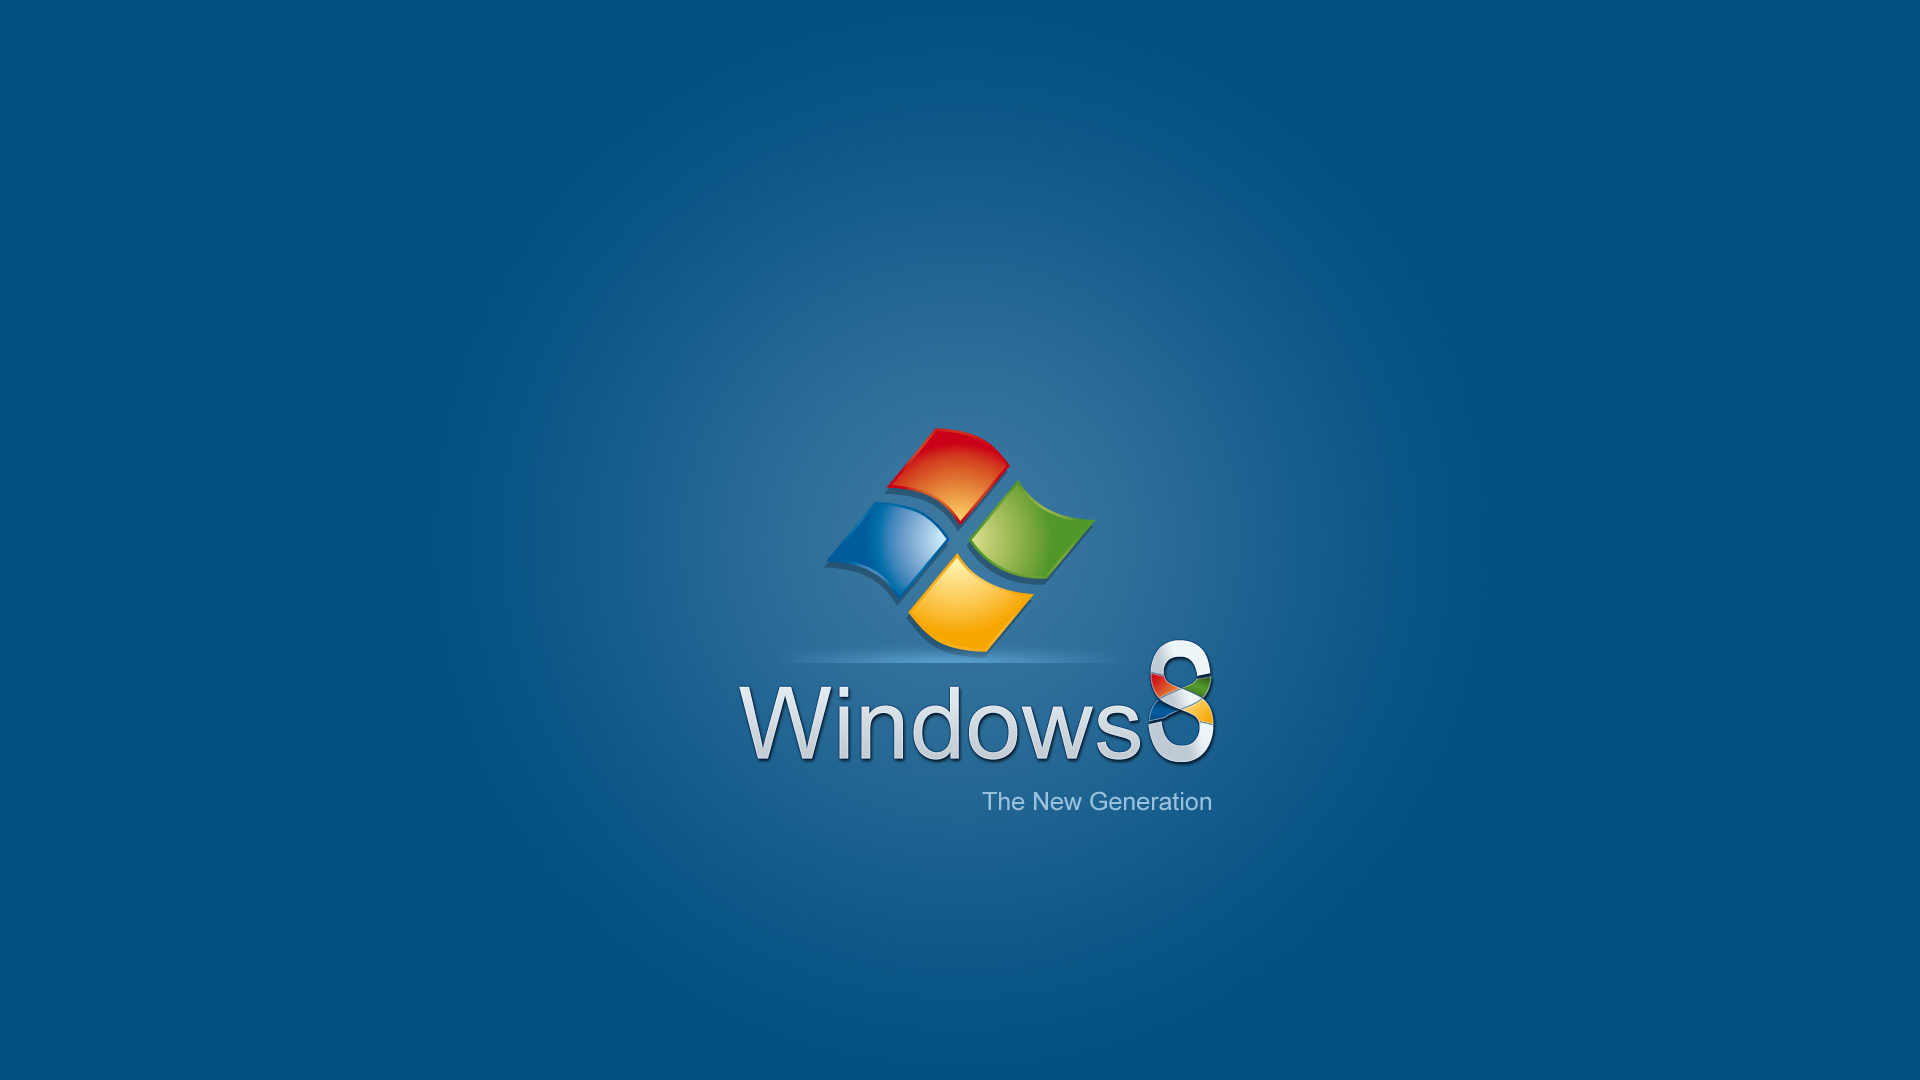 windows 8 avs